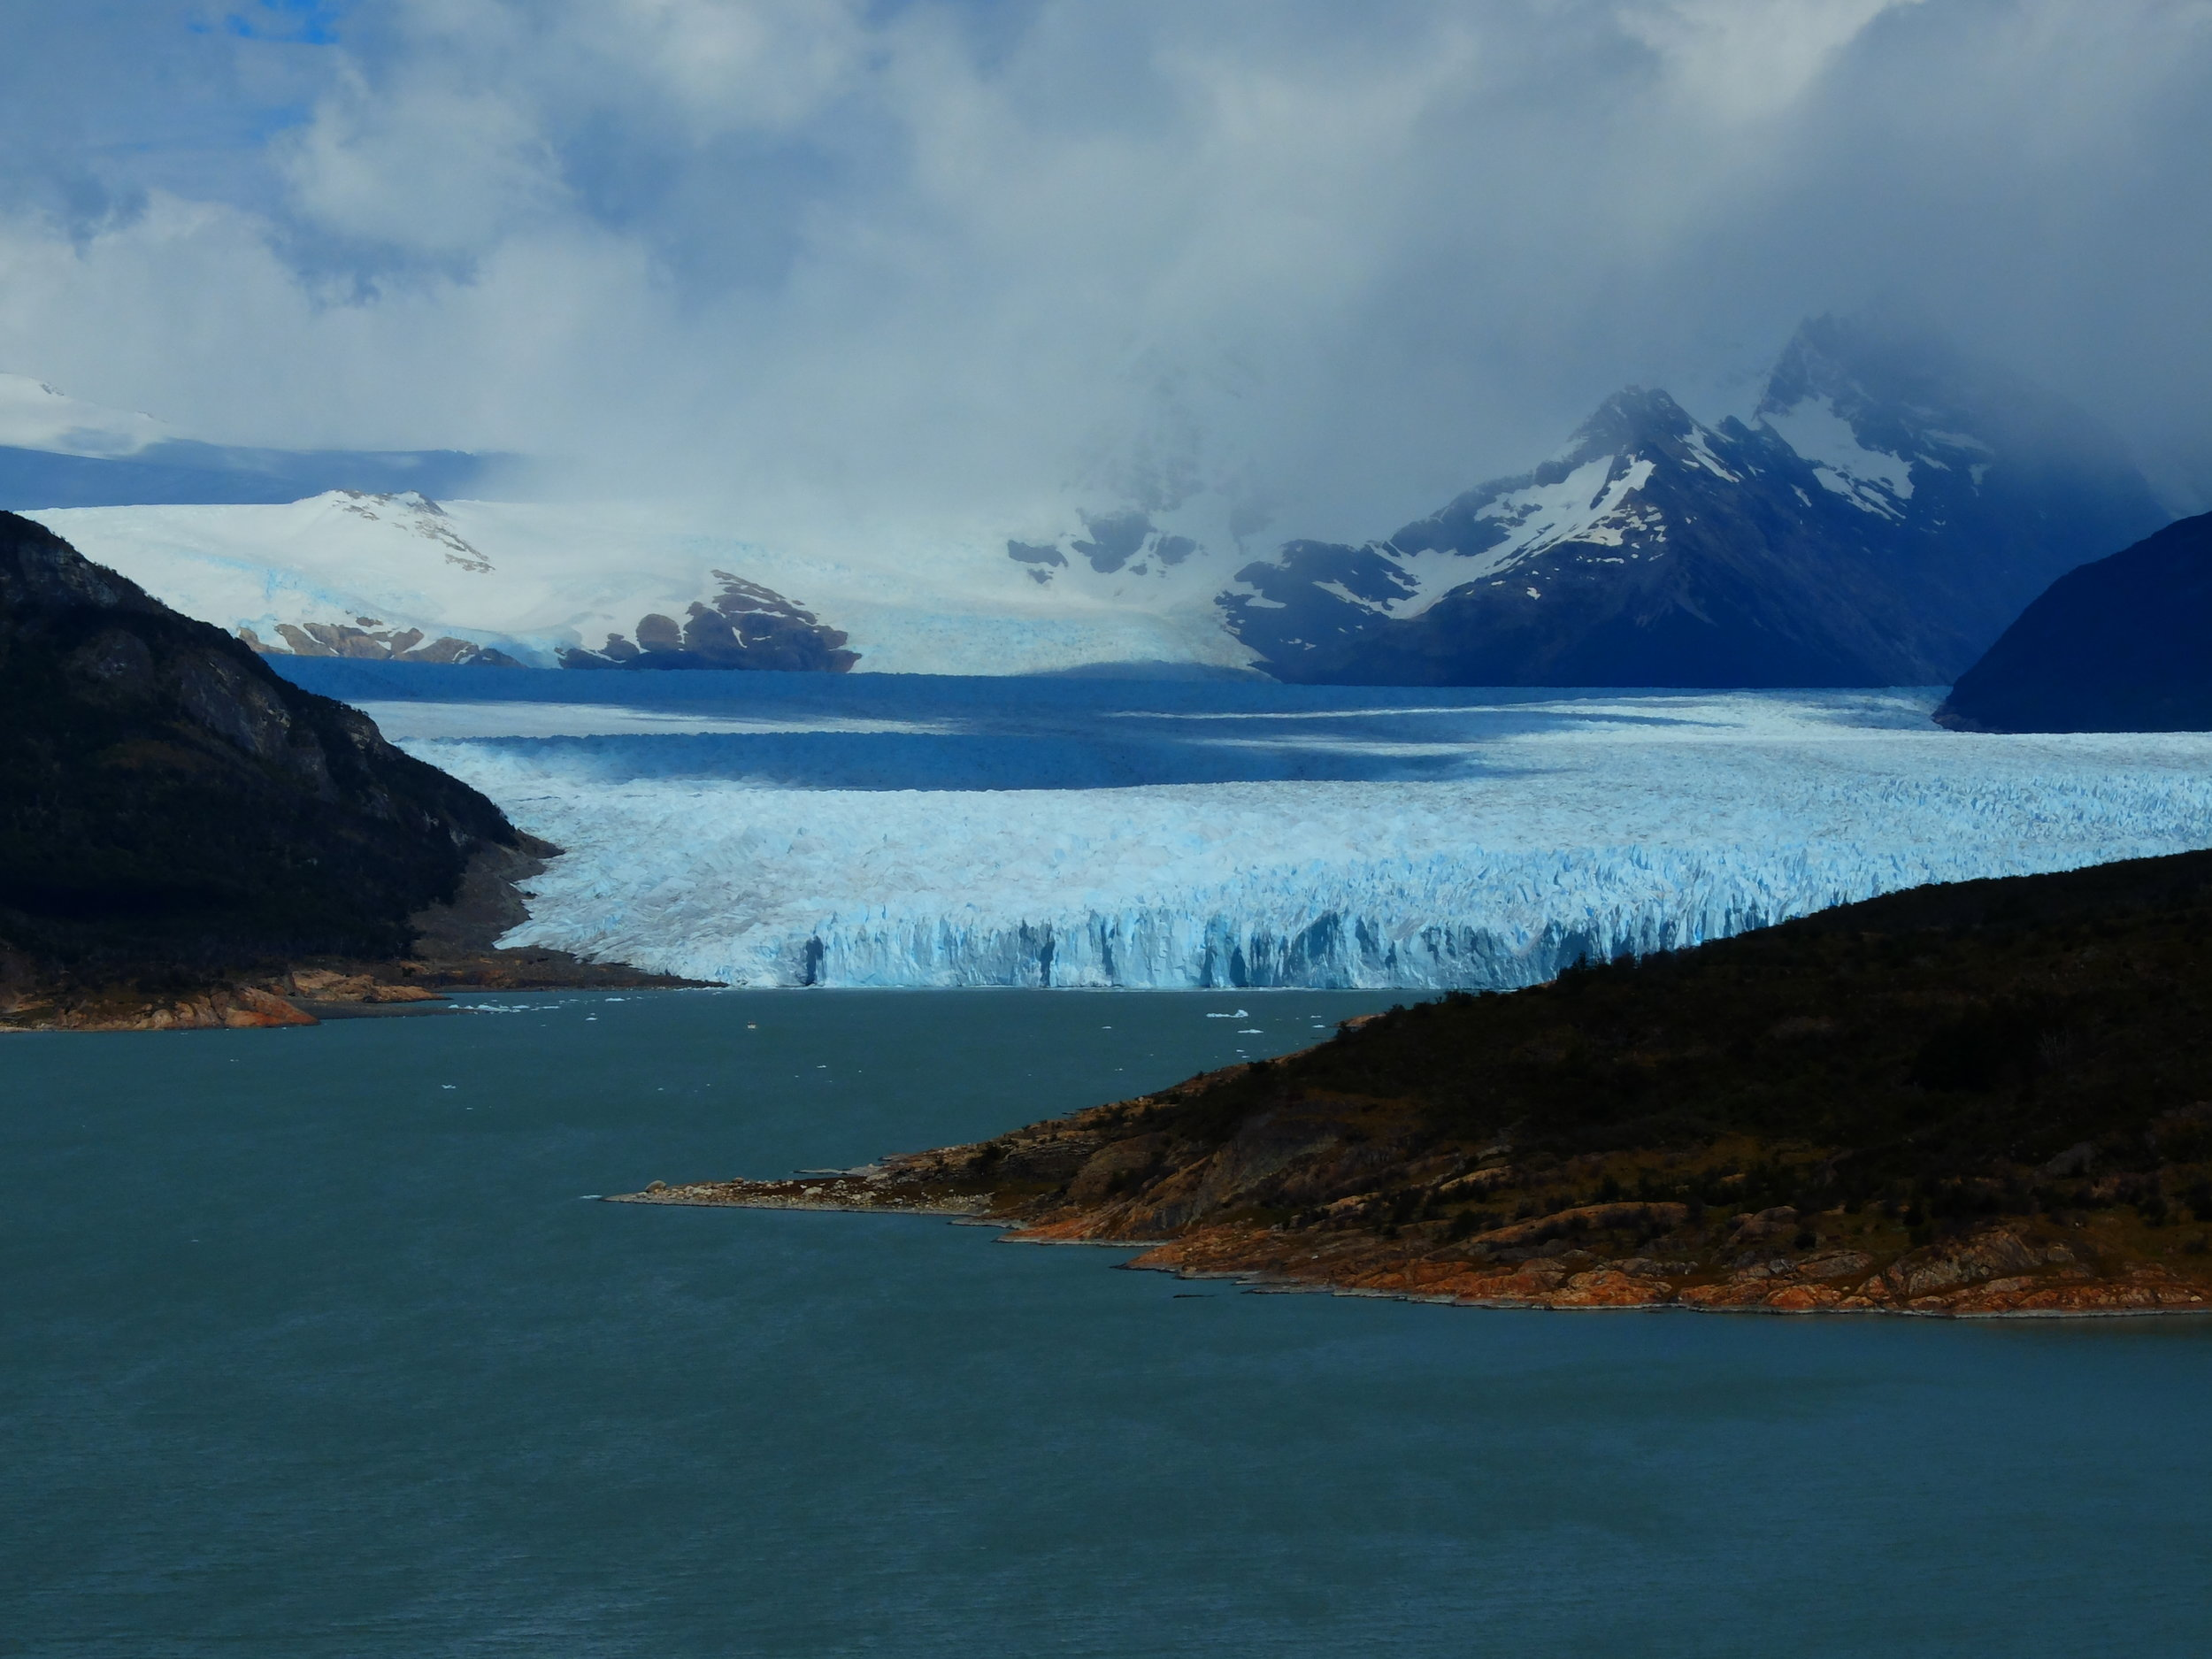 First sighting of the glacier.